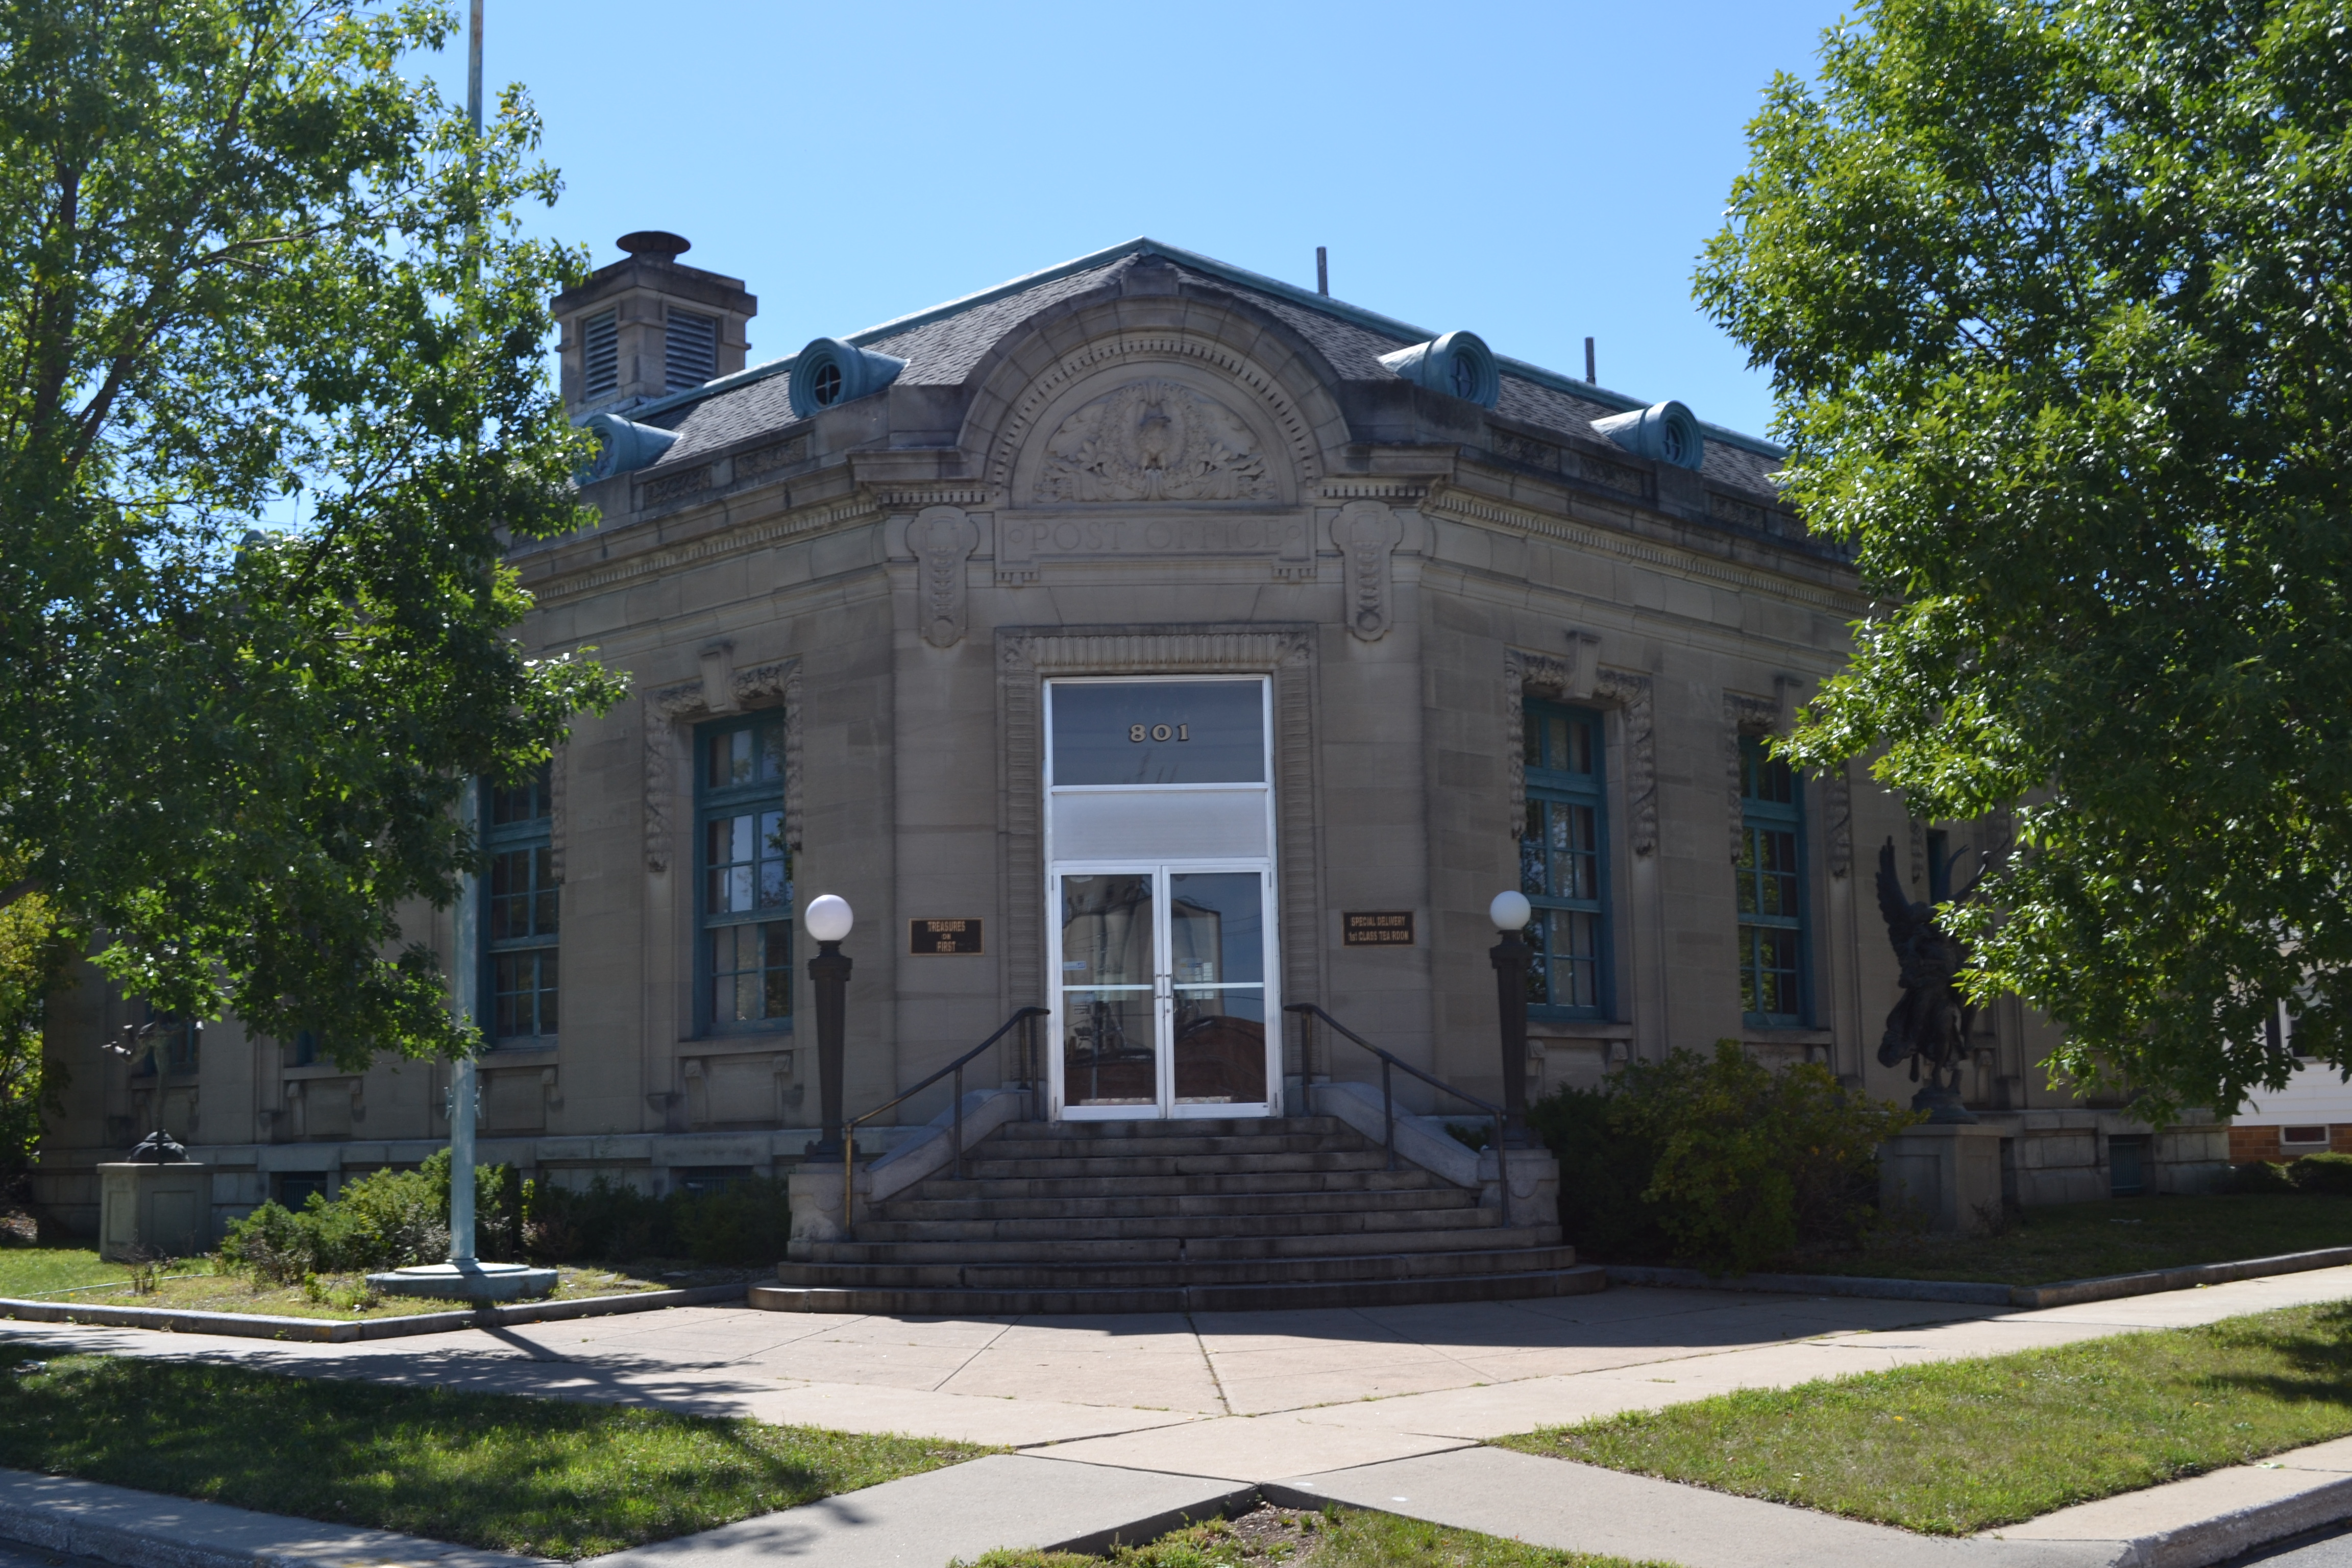 Webster City (IA) United States  city images : Description Webster City Post Office building, Webster City, Iowa